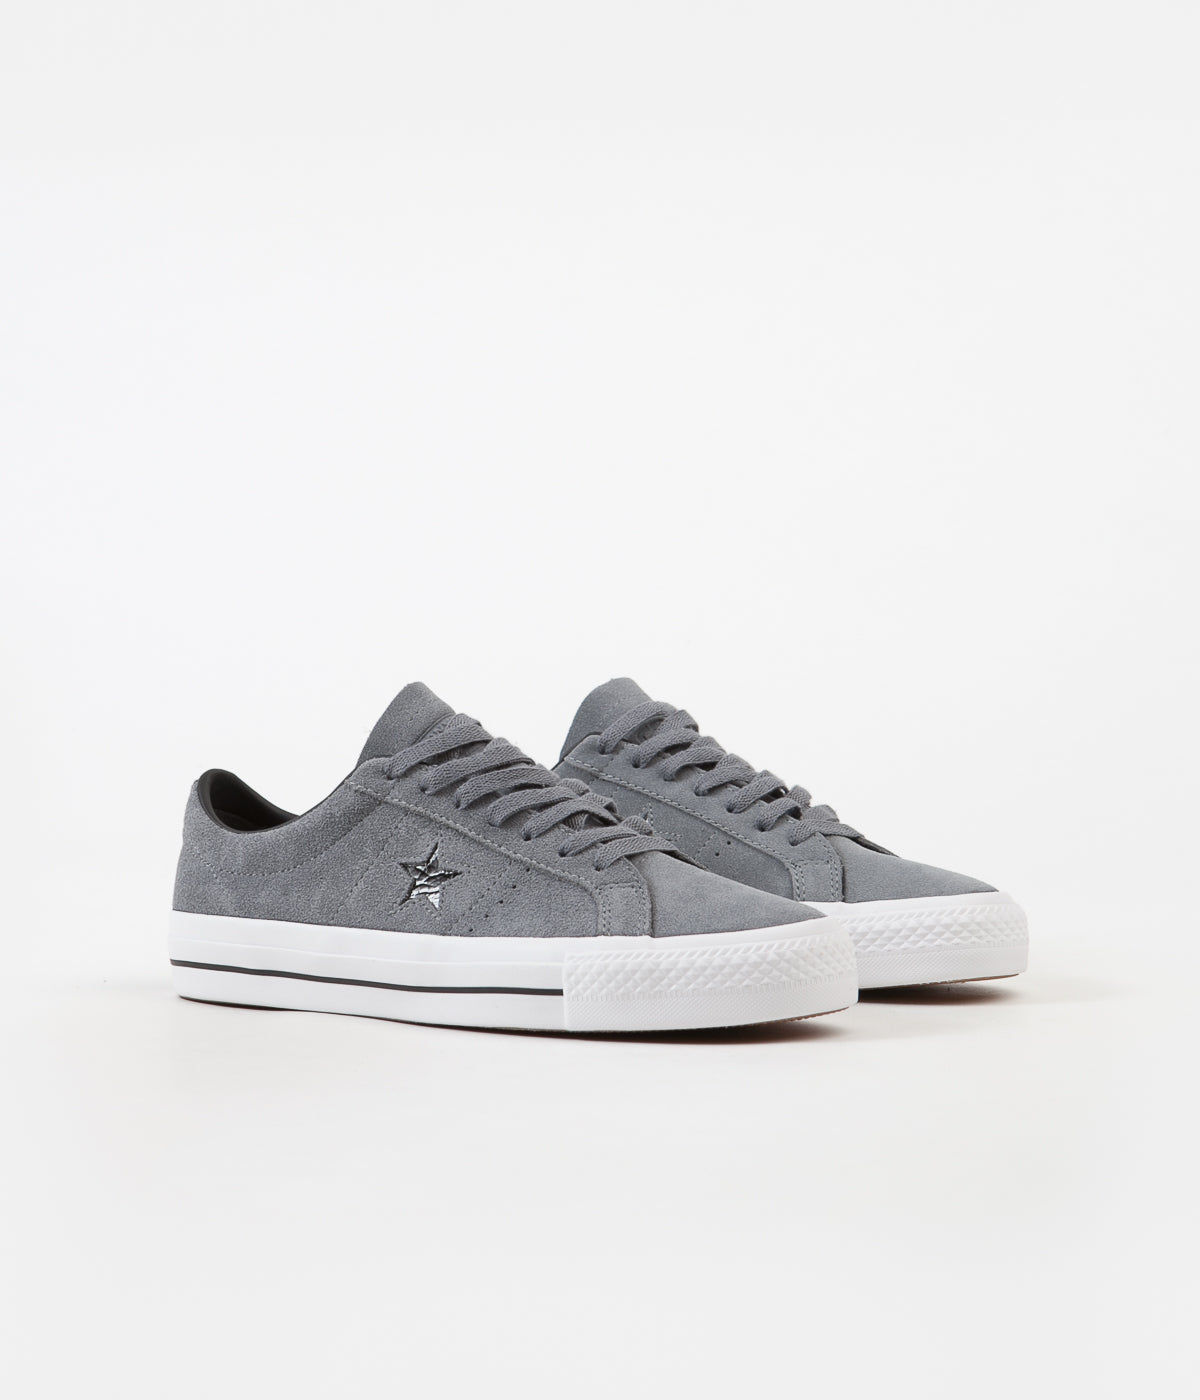 ... Converse One Star Pro Ox Shoes - Cool Grey   Black   White ... 3daf8a0a8